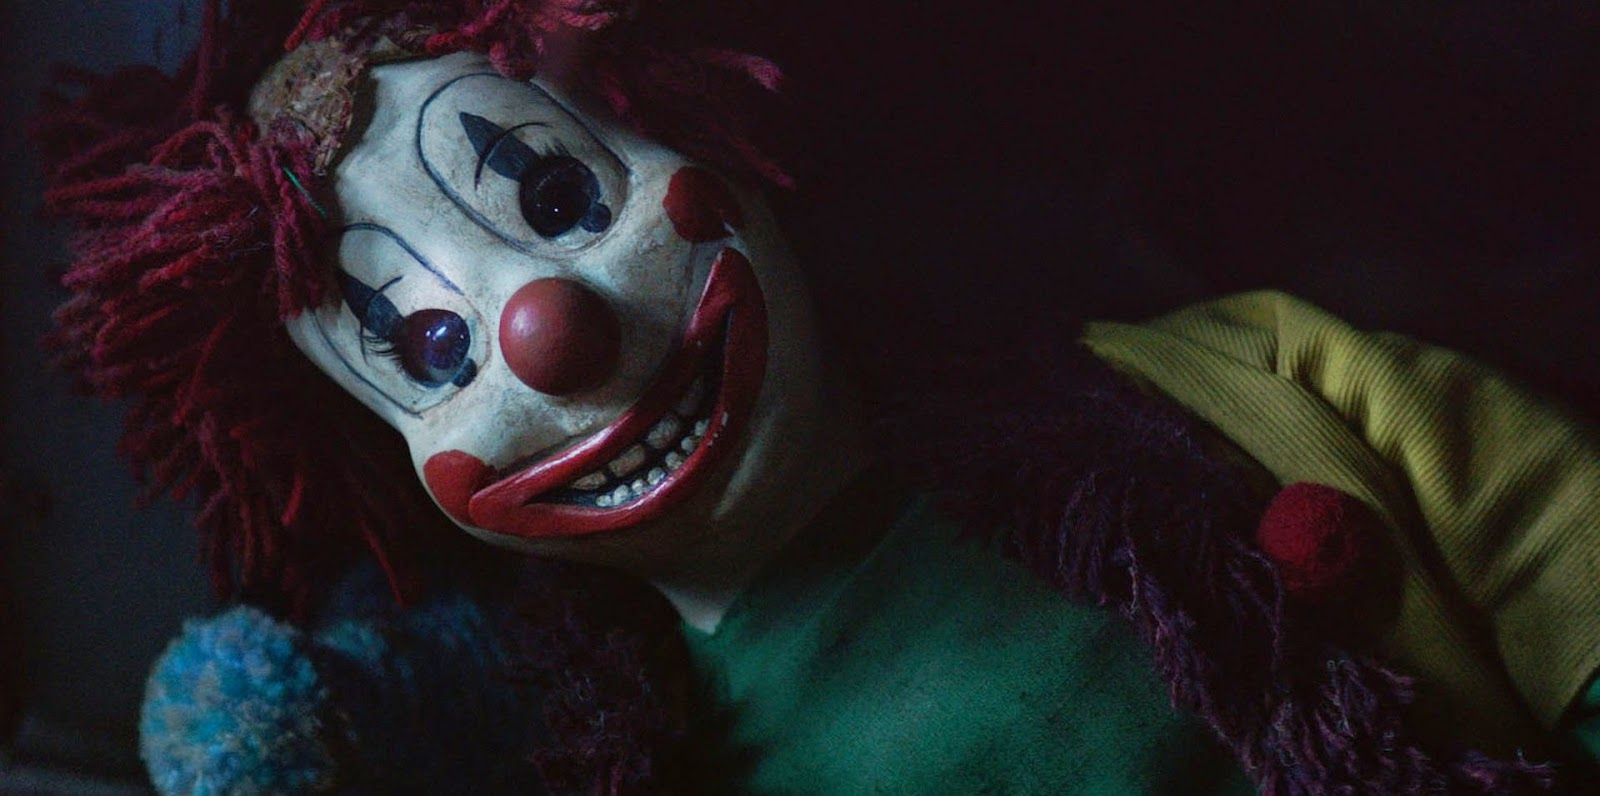 Cenas inéditas no featurette do terror sobrenatural Poltergeist: O Fenômeno